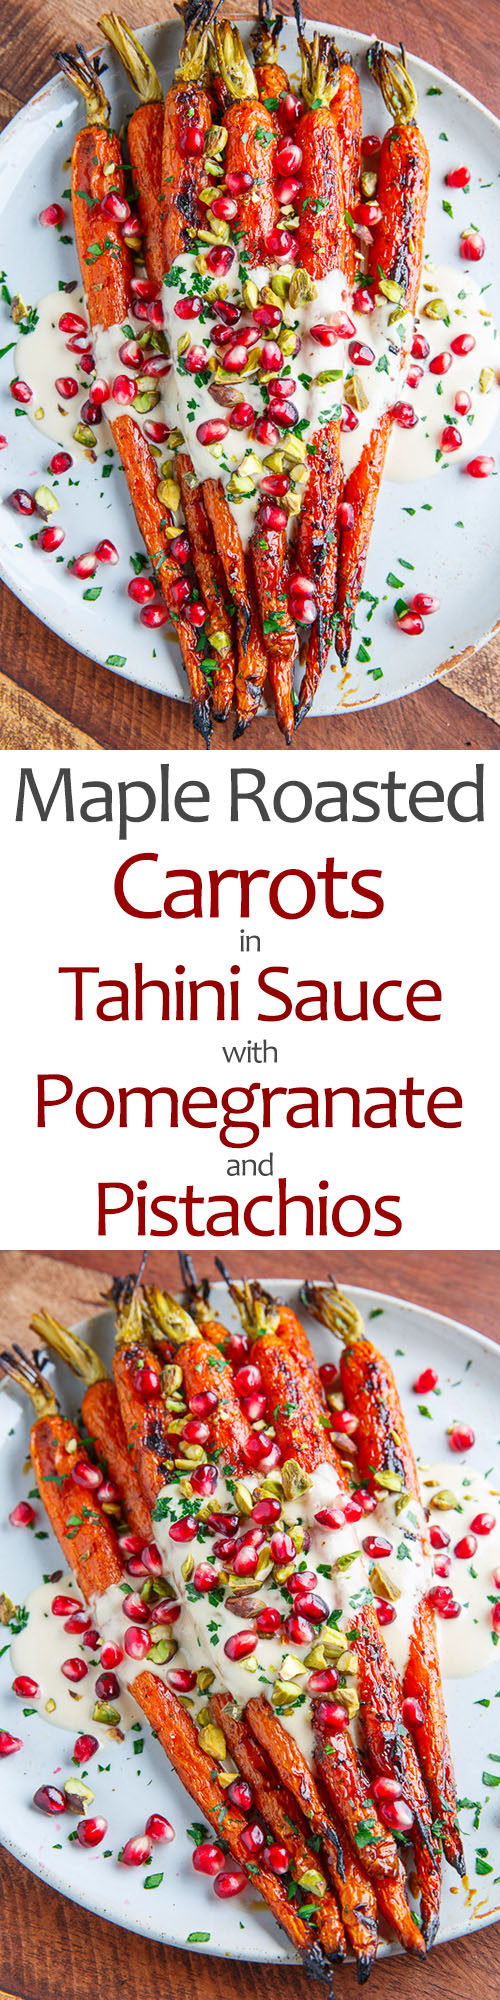 Maple Roasted Carrots in Tahini Sauce with Pomegranate and Pistachios